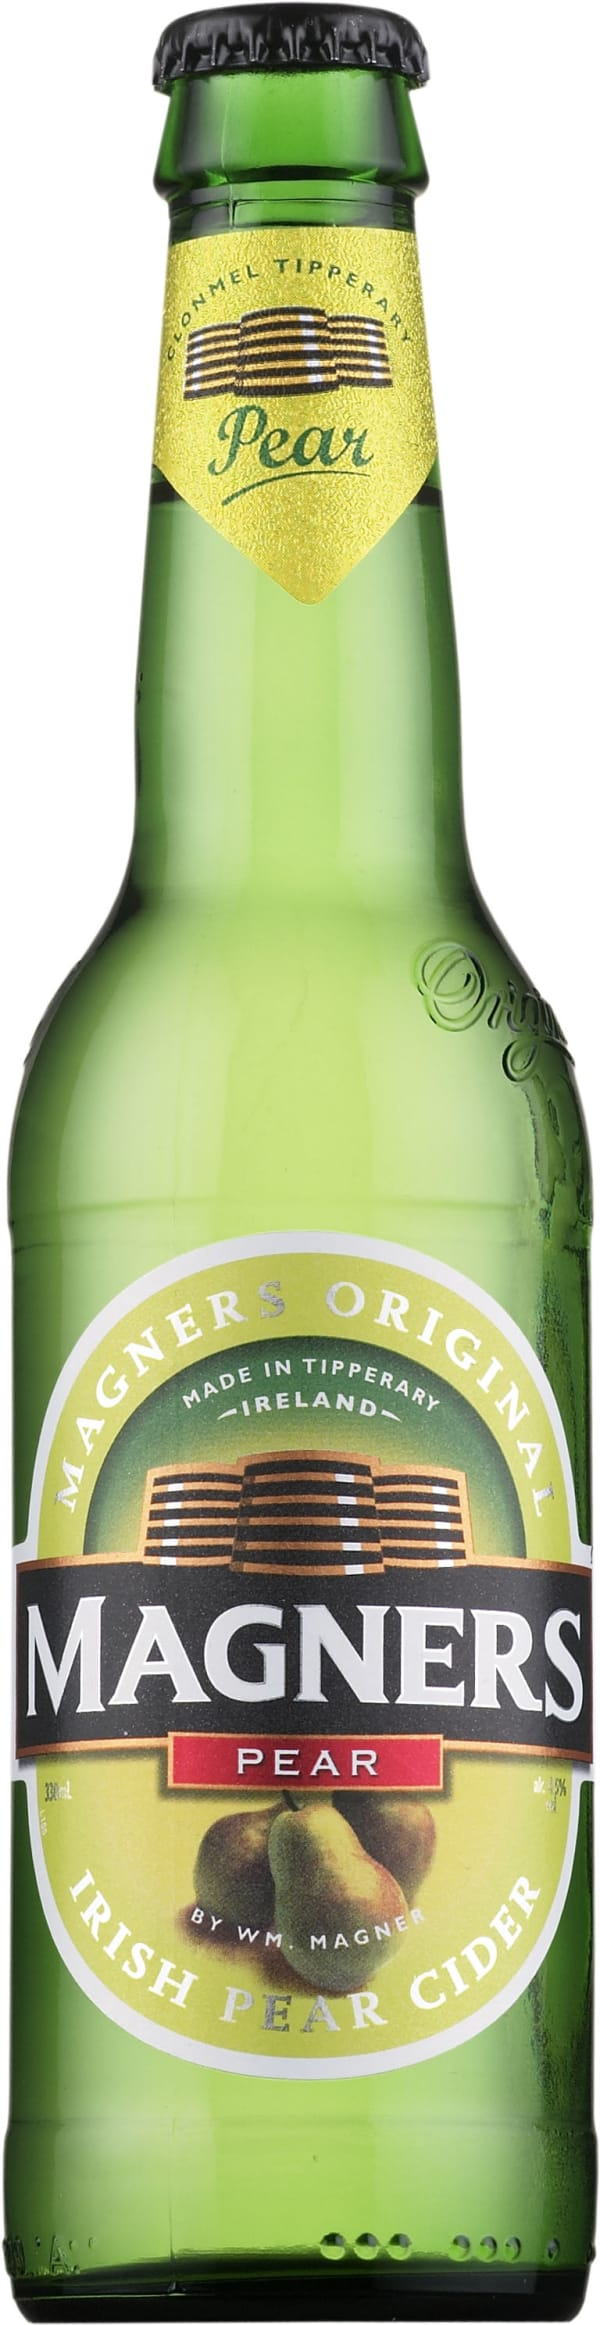 Magners Irish Pear Cider